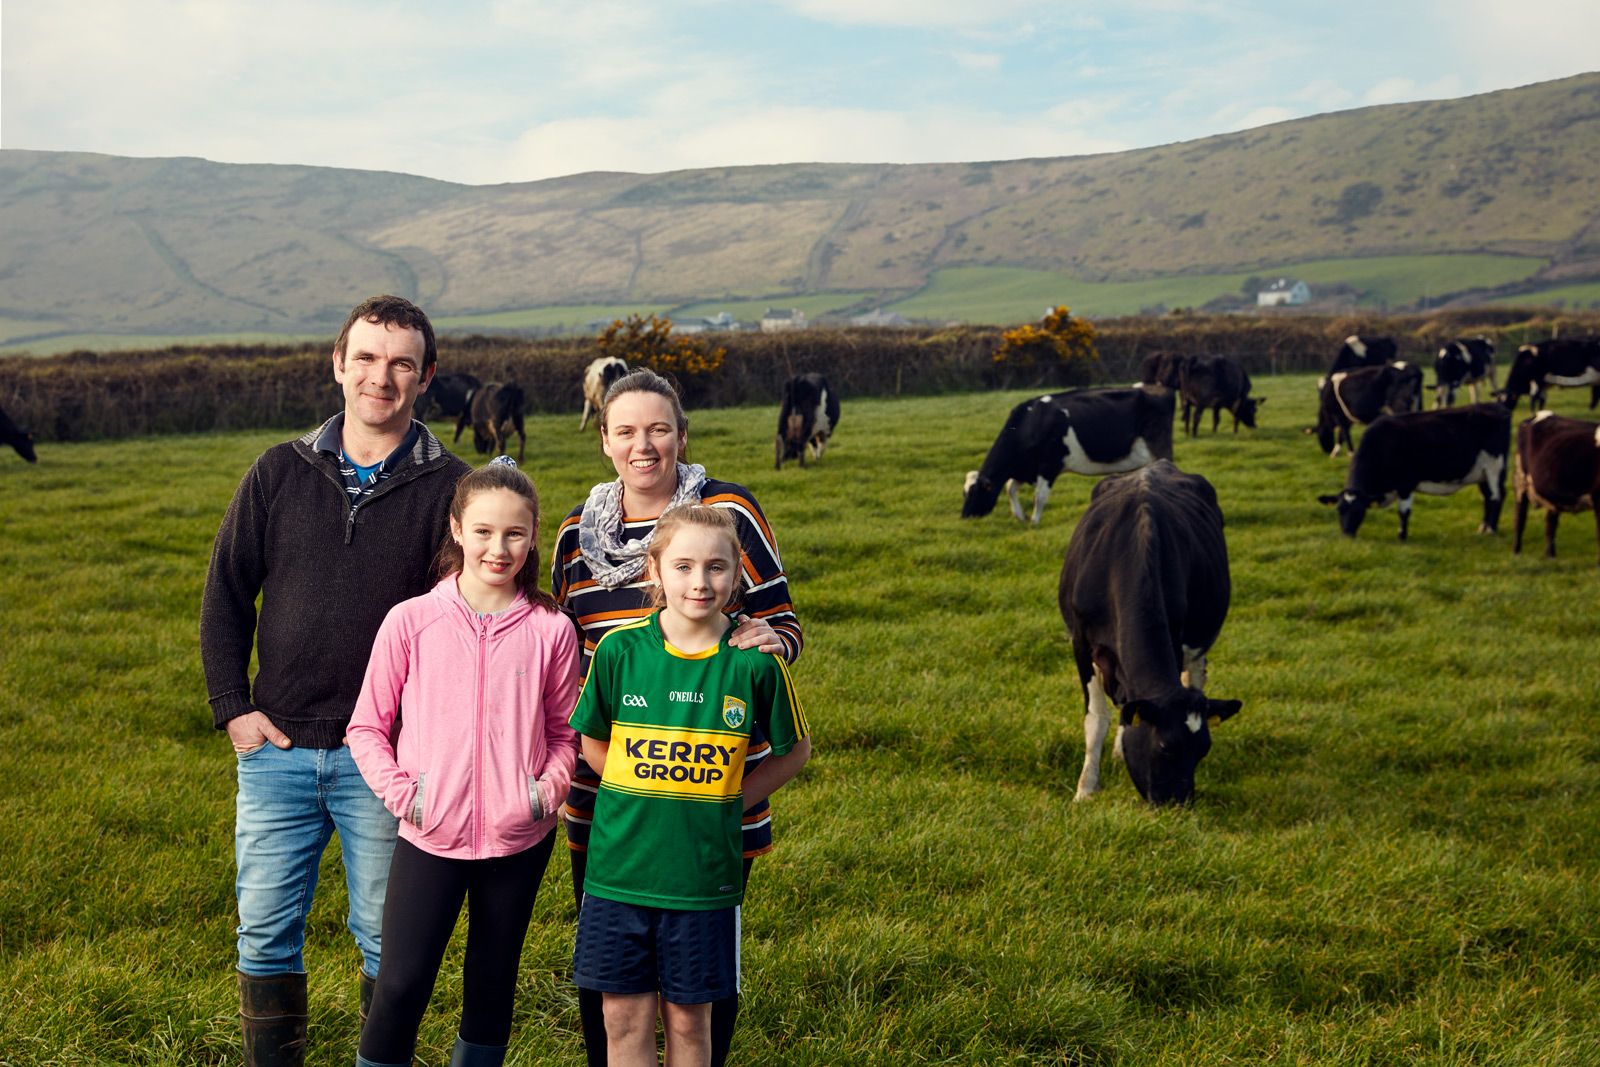 farmer and his family stand in field of cows